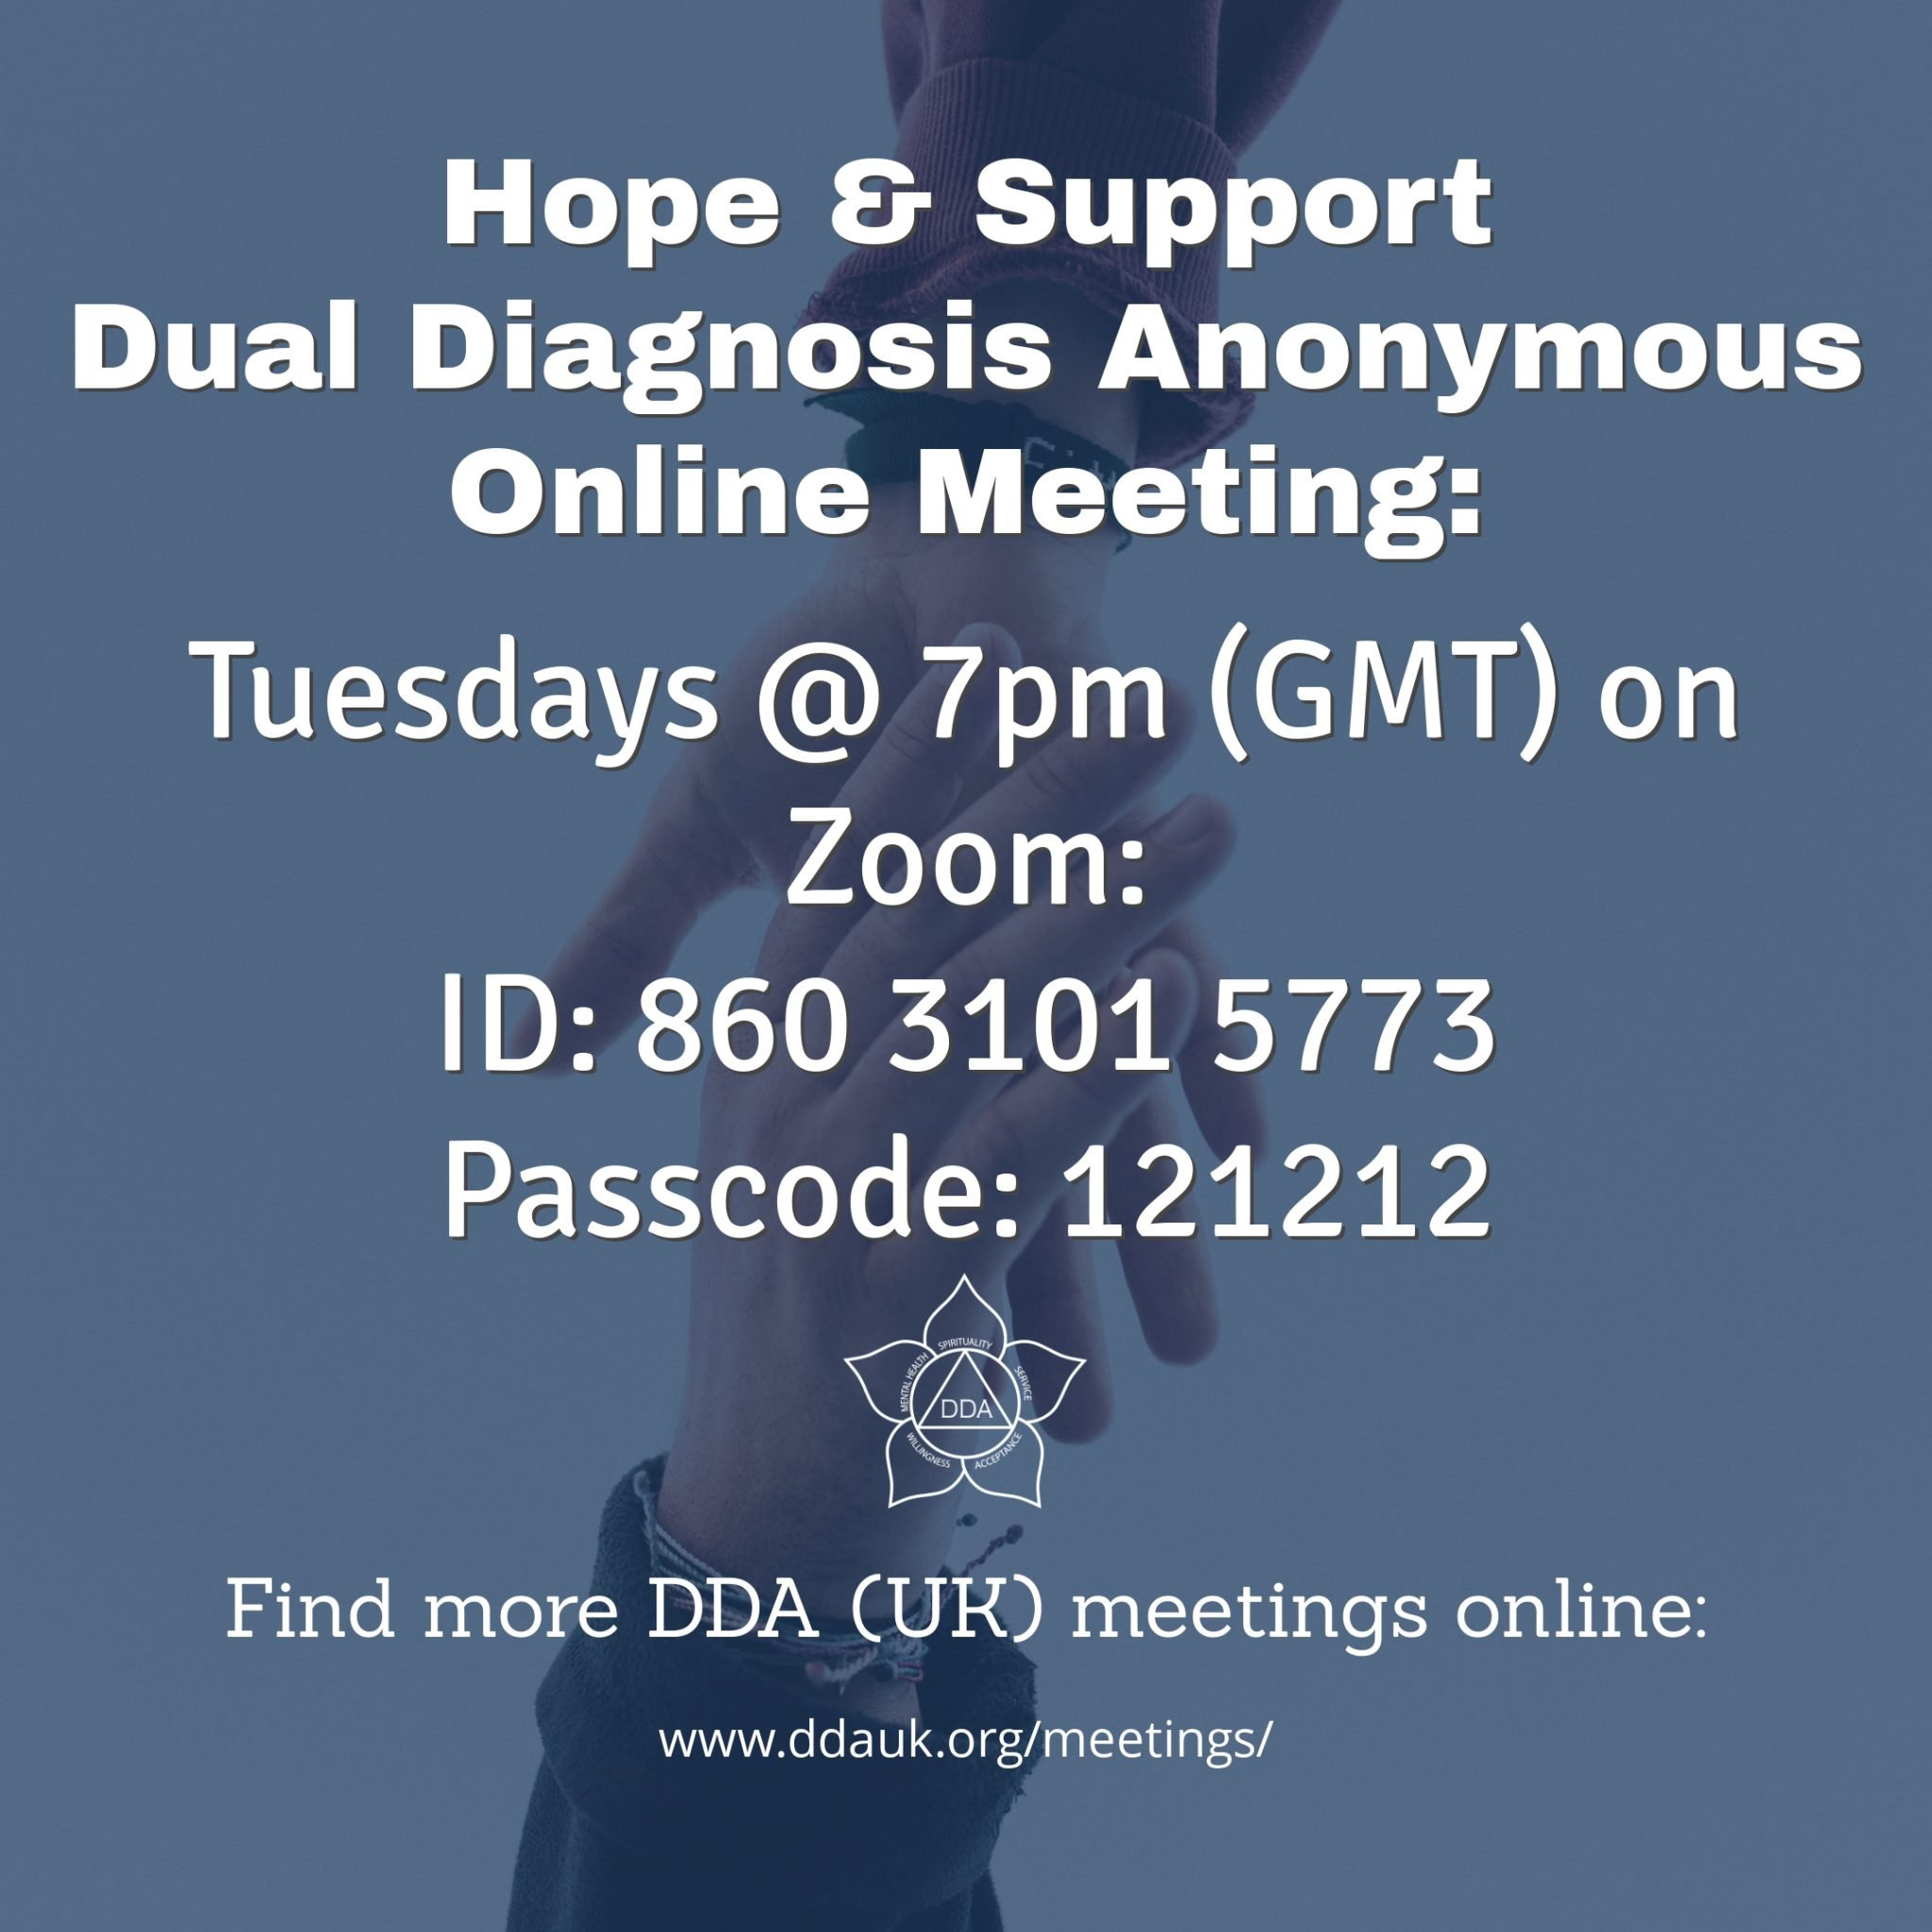 Tuesday Hope & Support DDA Zoom Meeting